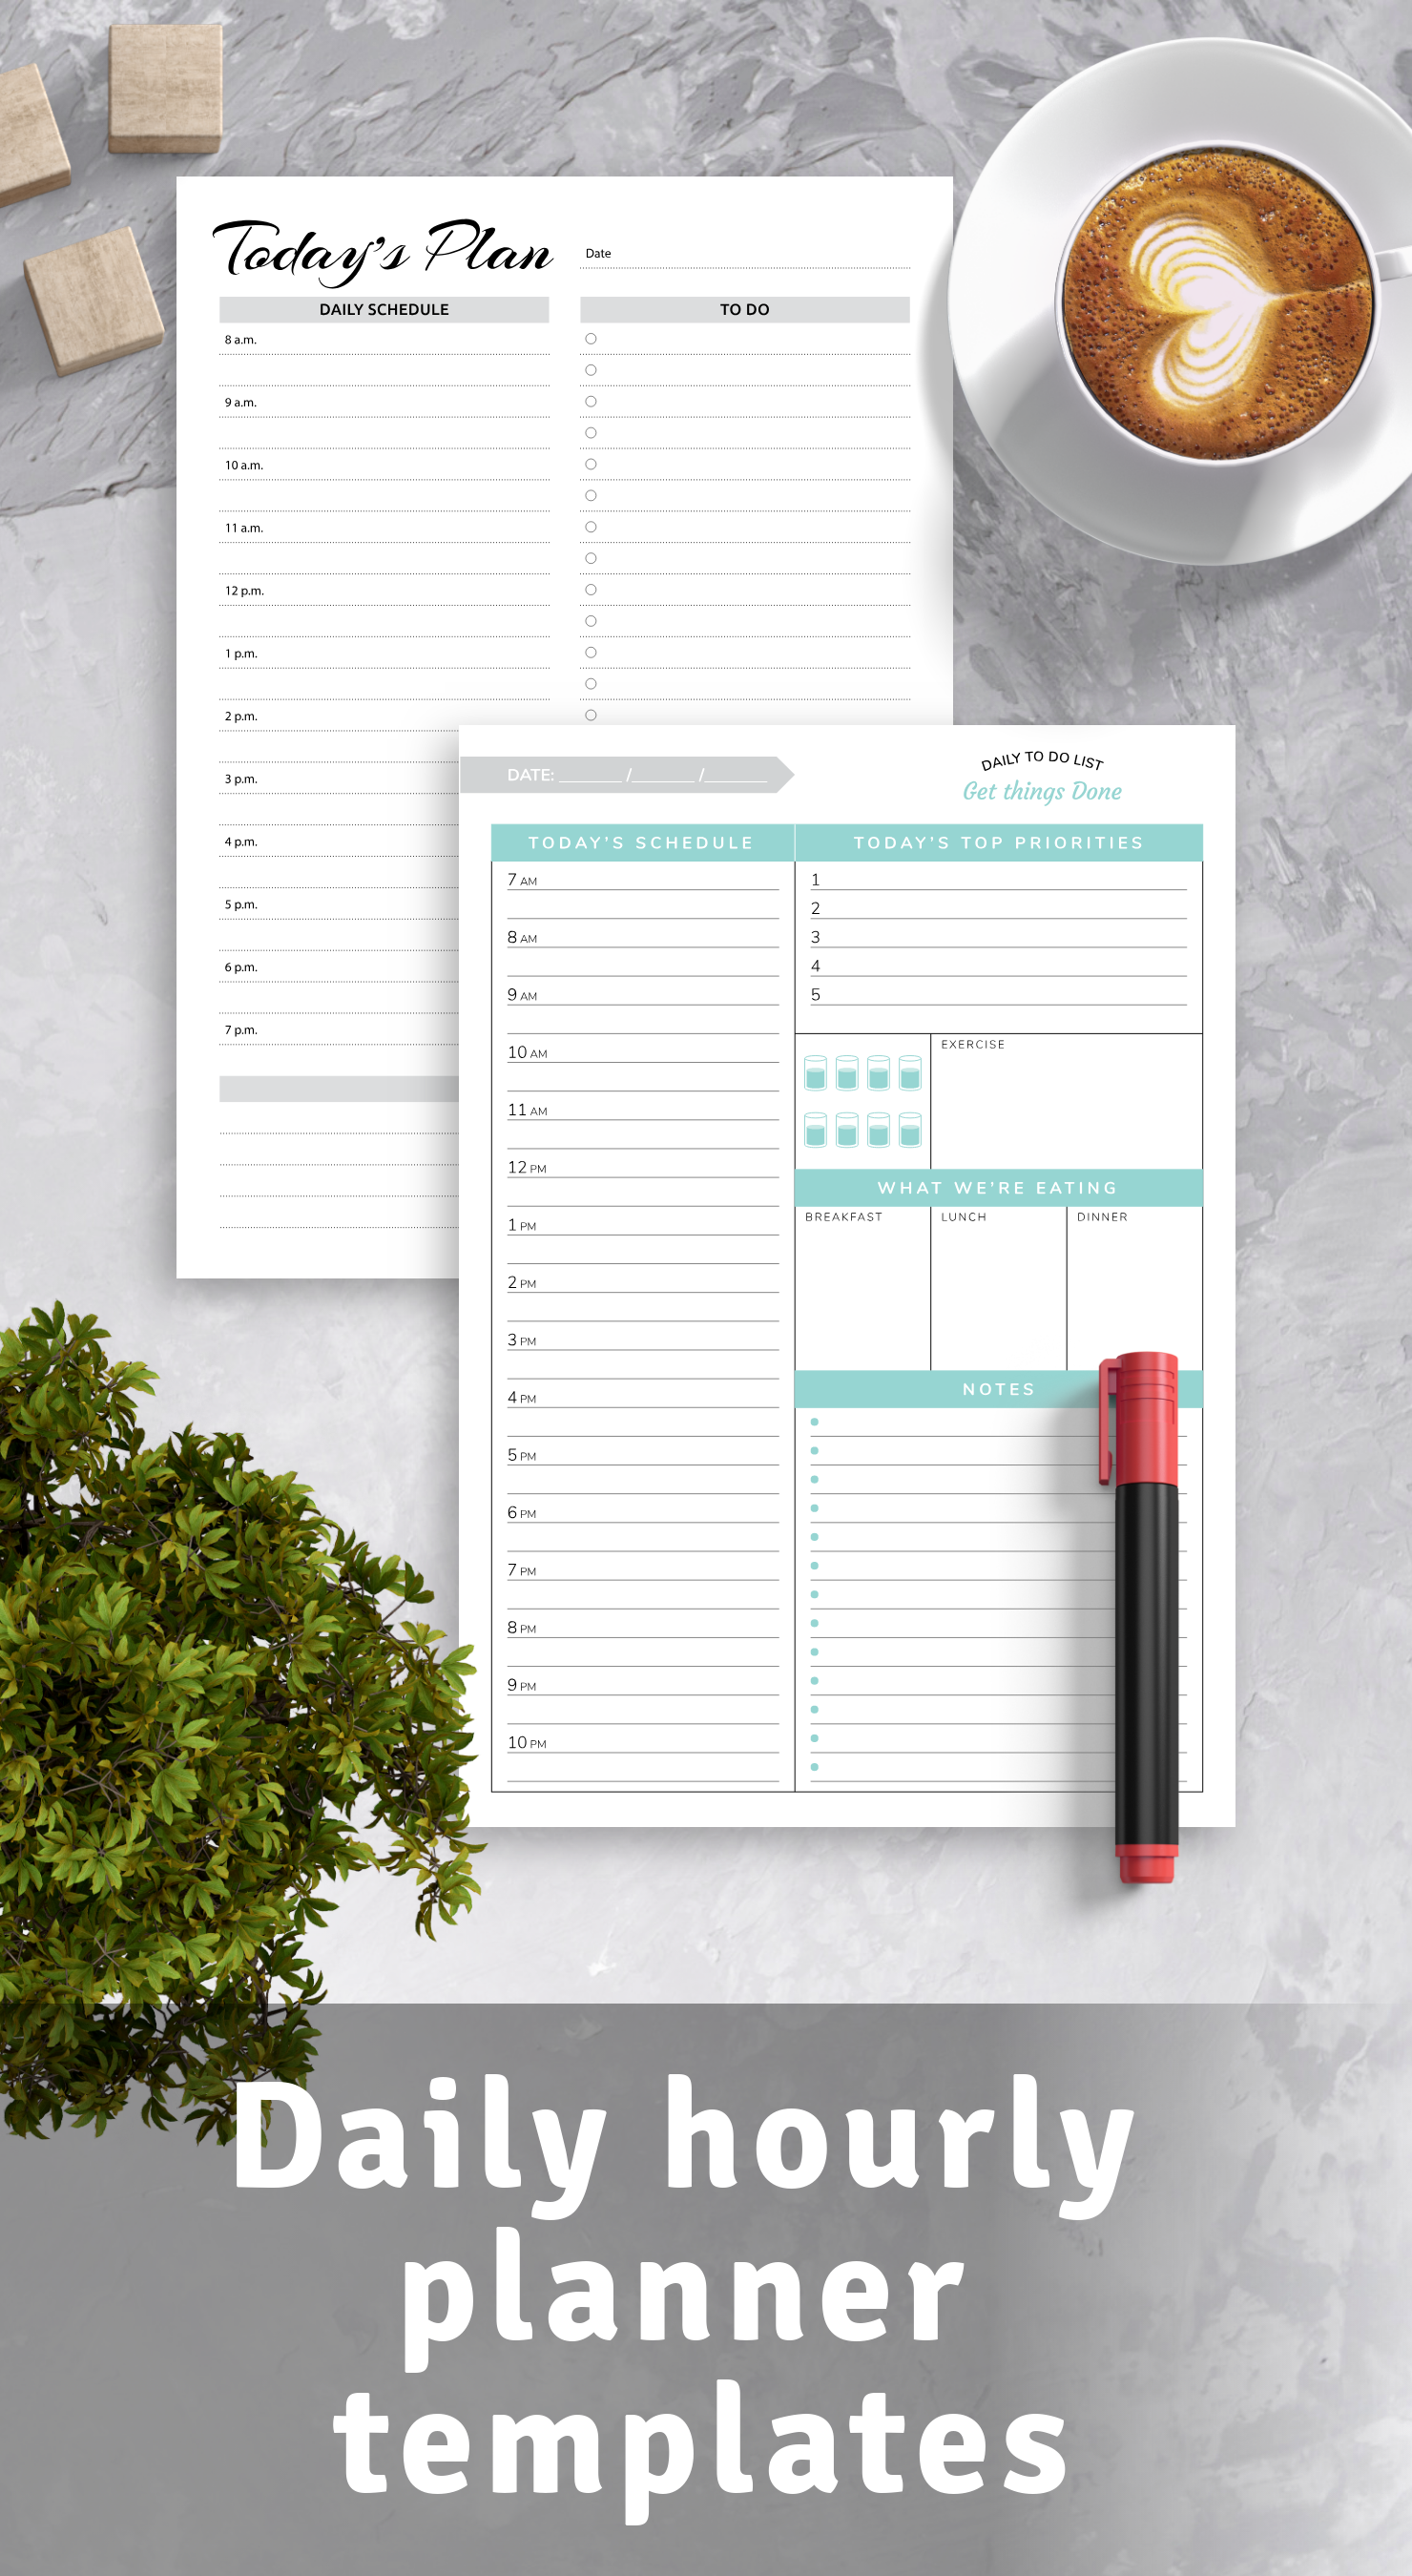 Download daily hourly planner templates